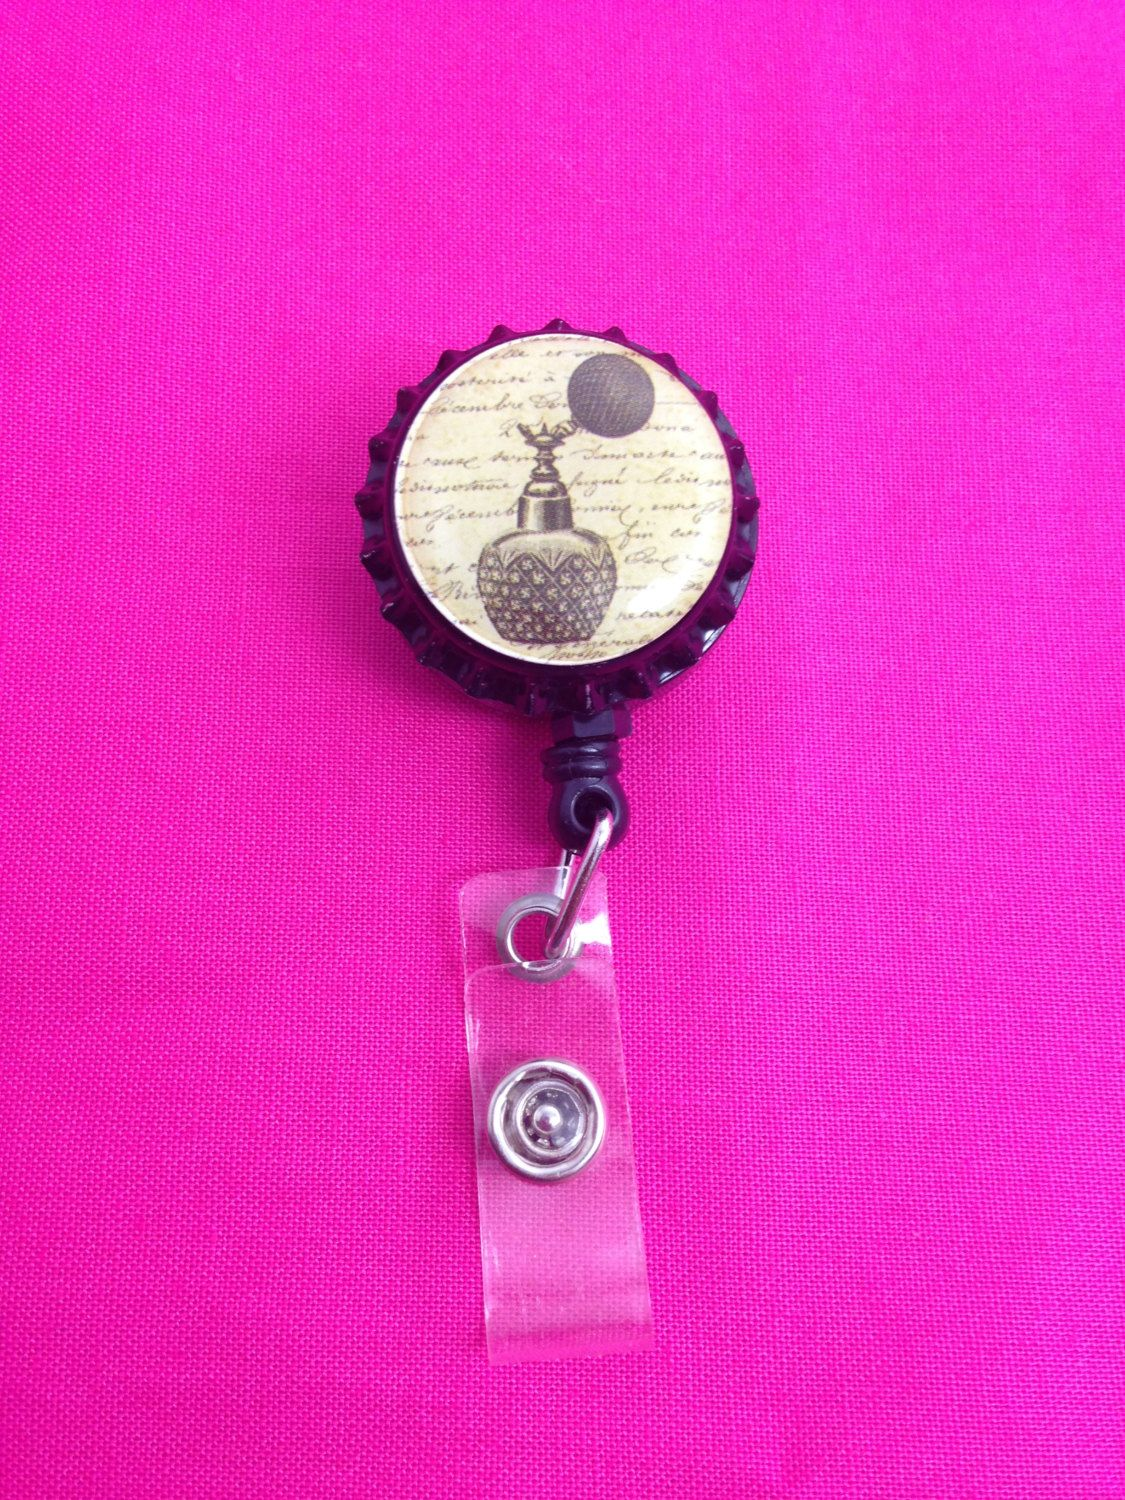 Perfume Bottle Retractable Badge Holder by GraysonsHome on Etsy